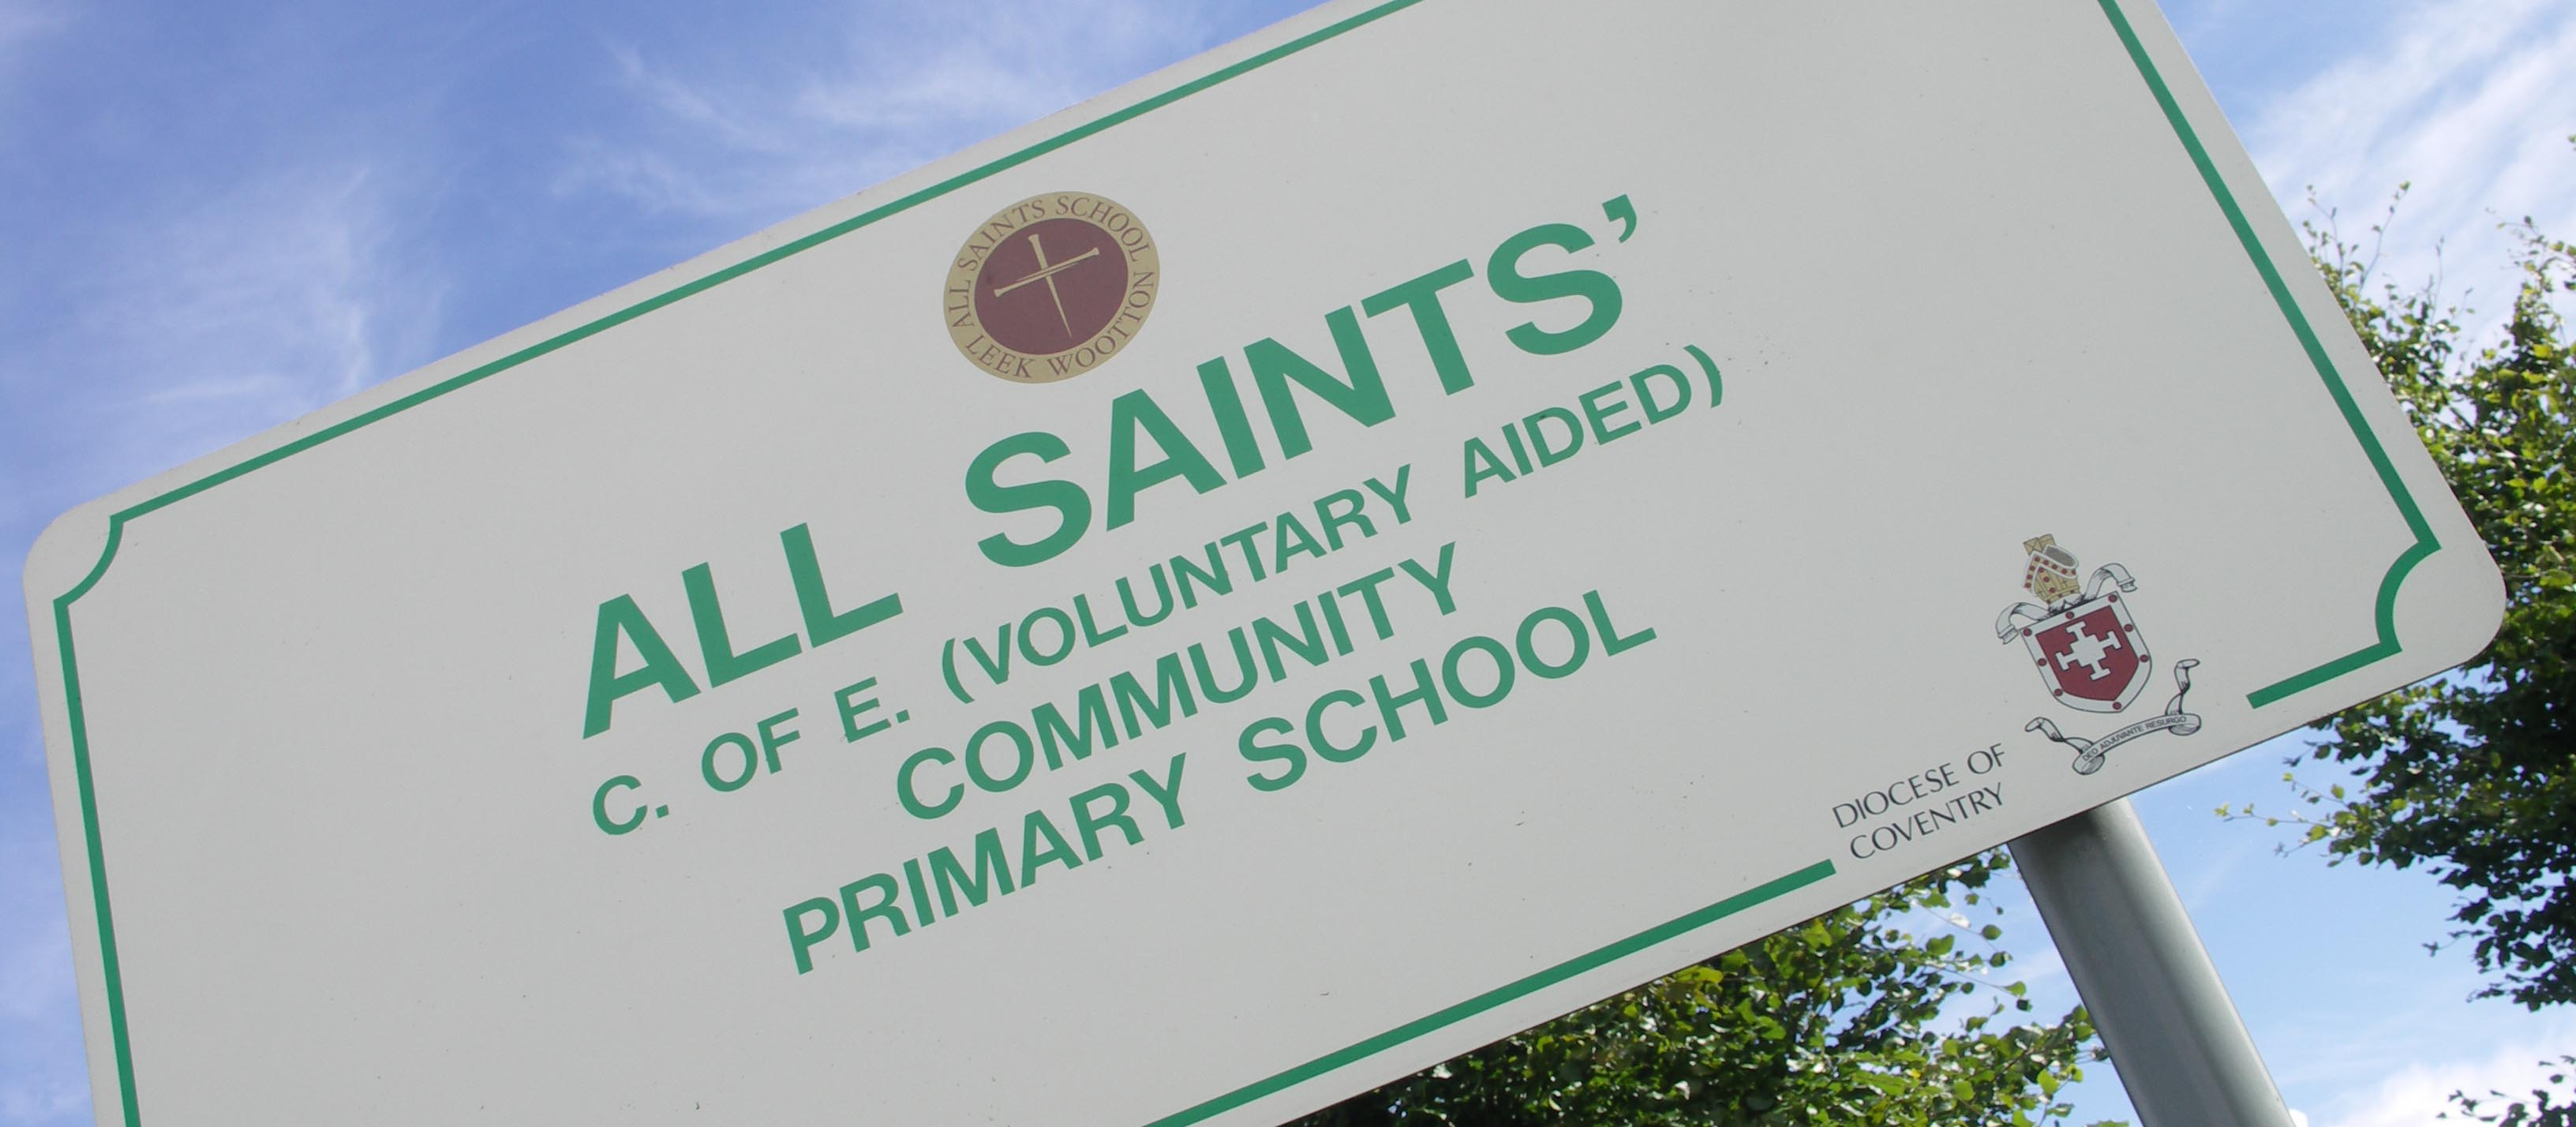 All Saints CE (VA) Community Primary School, Leek Wootton